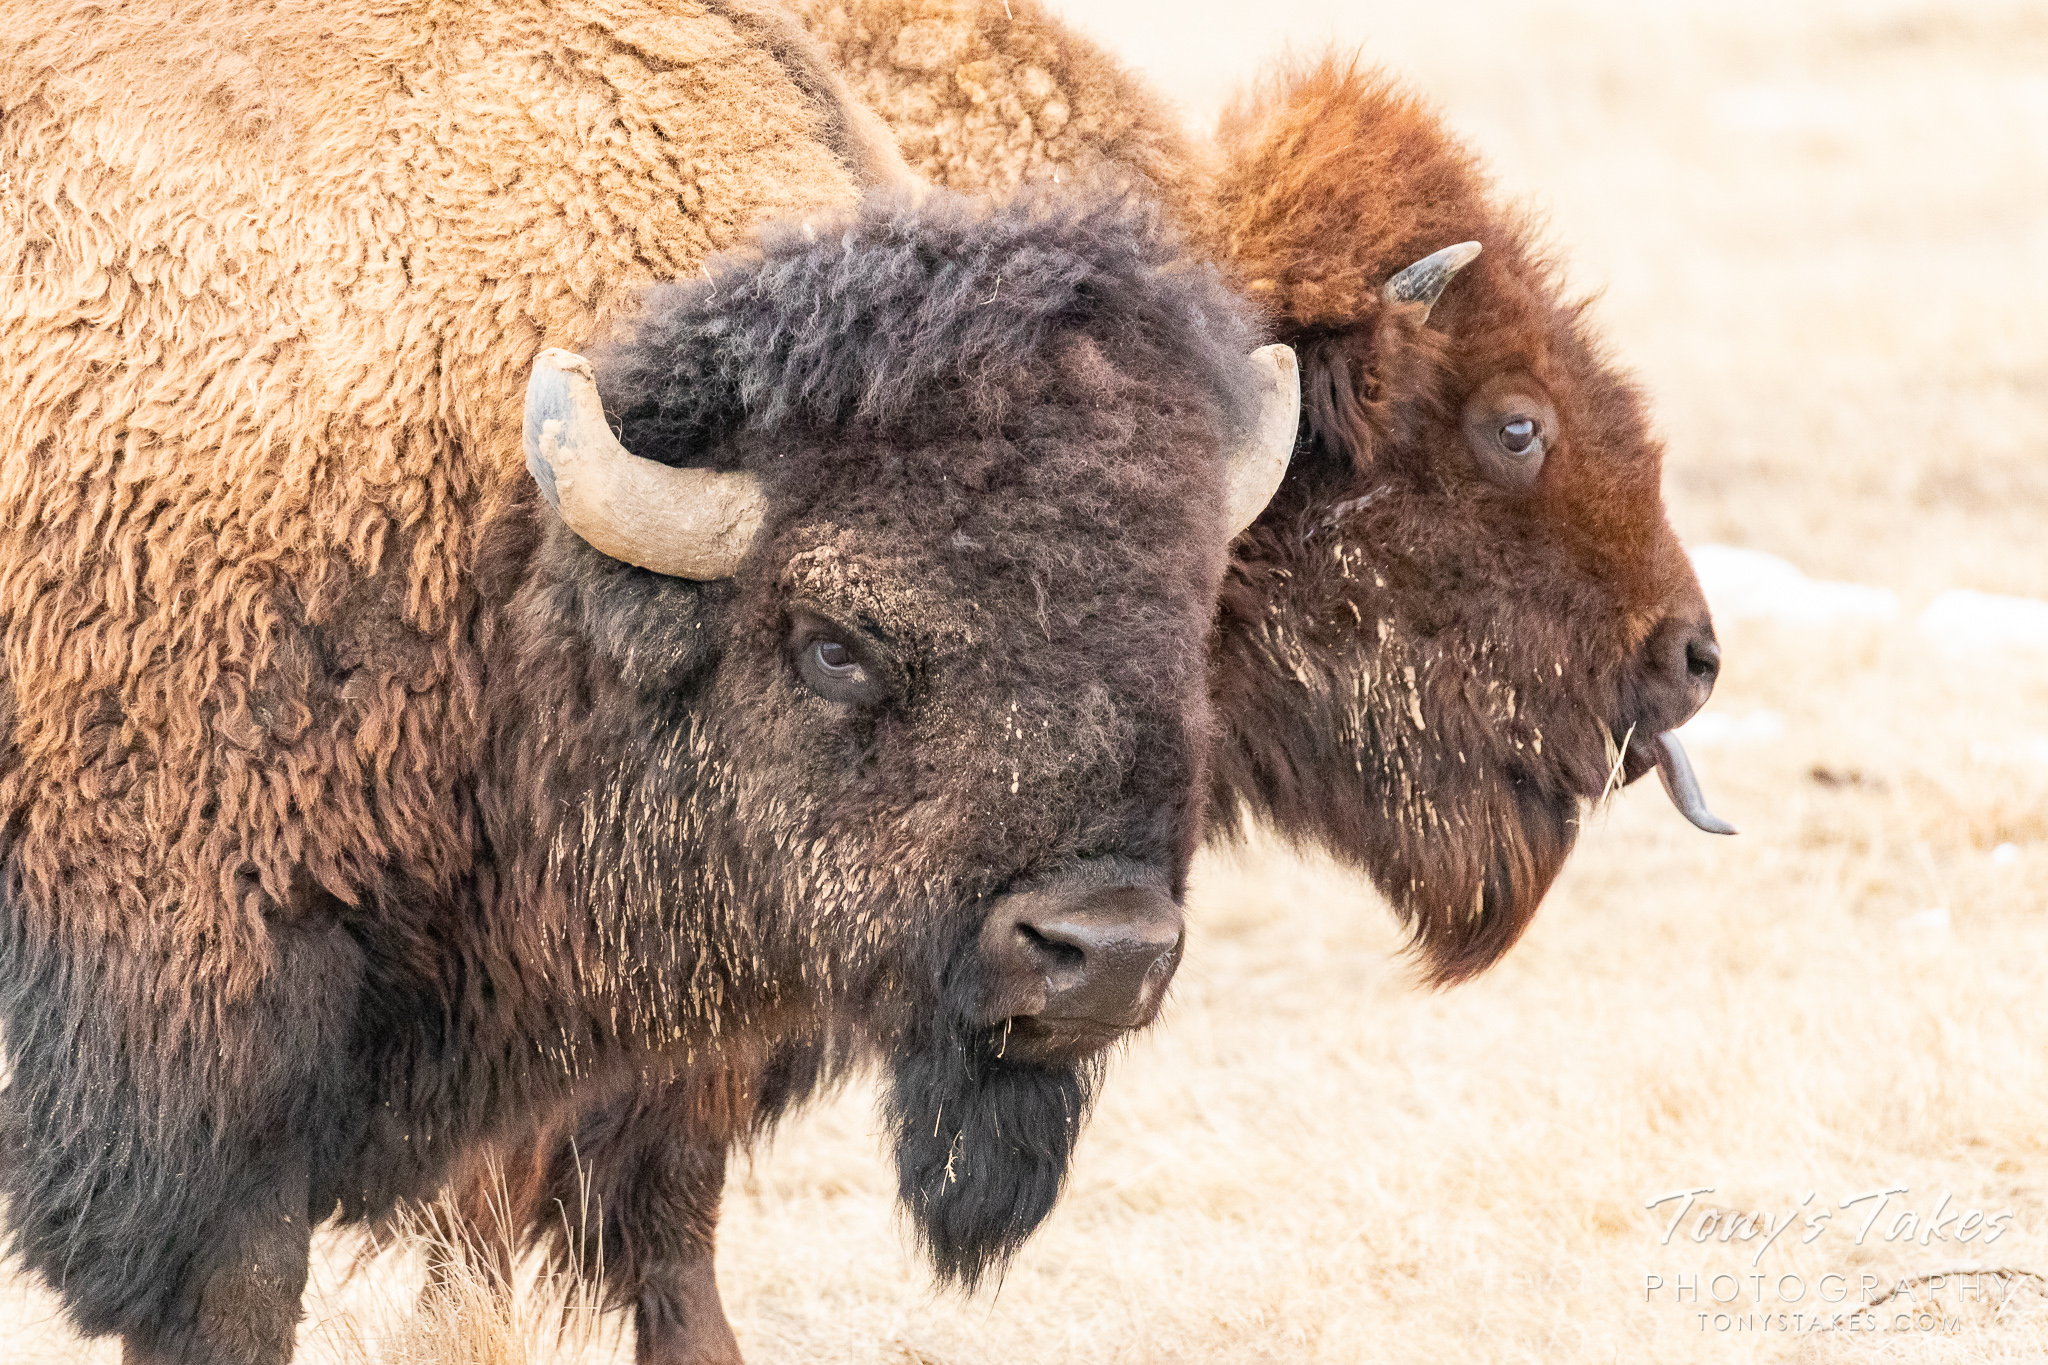 A bison cow seems to stick her tongue out as a reaction to a bull. (© Tony's Takes)